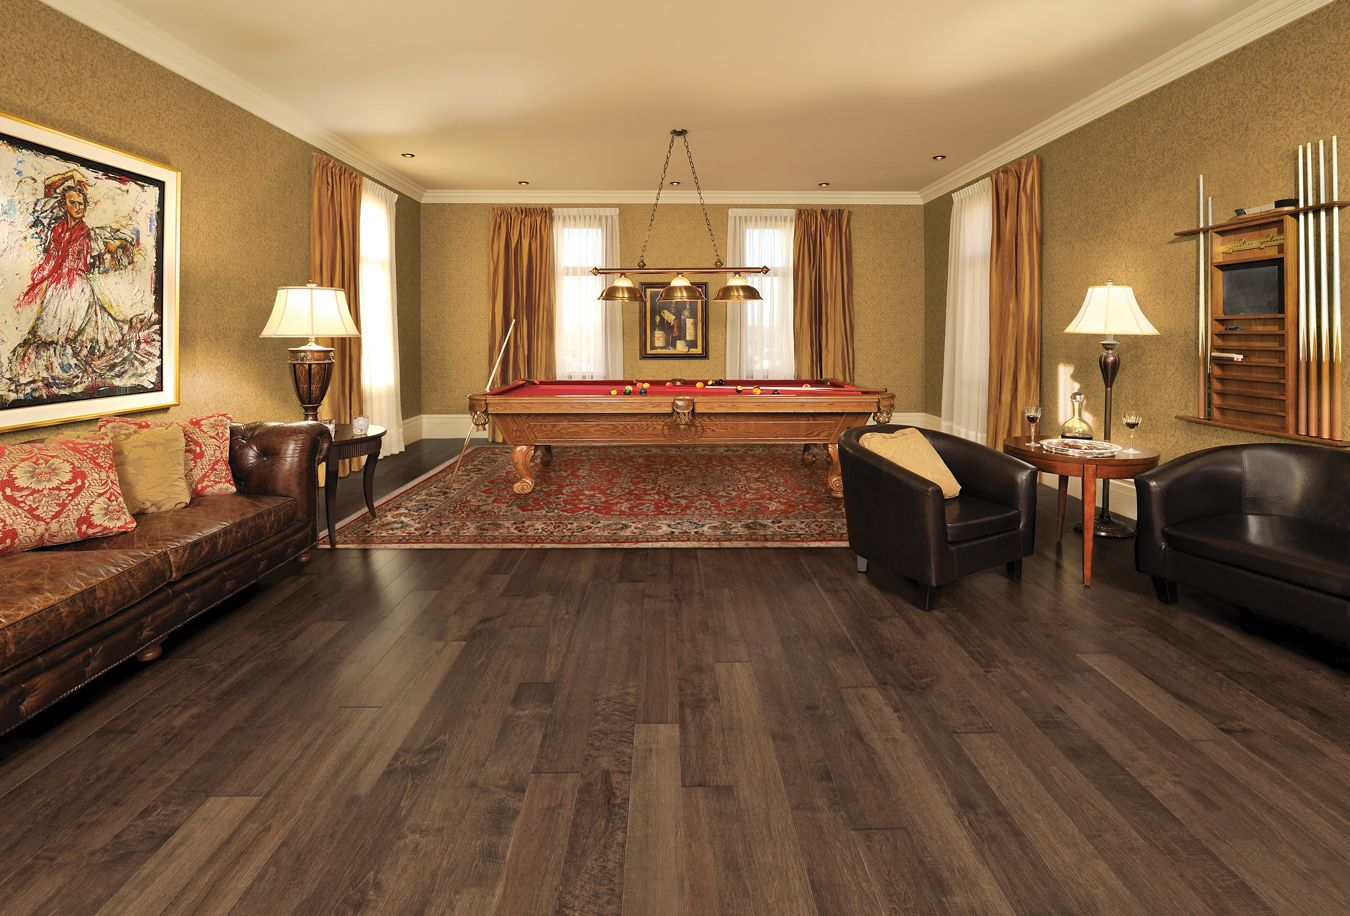 1000+ images about Mirage Hardwood Flooring Sale on Pinterest - ^